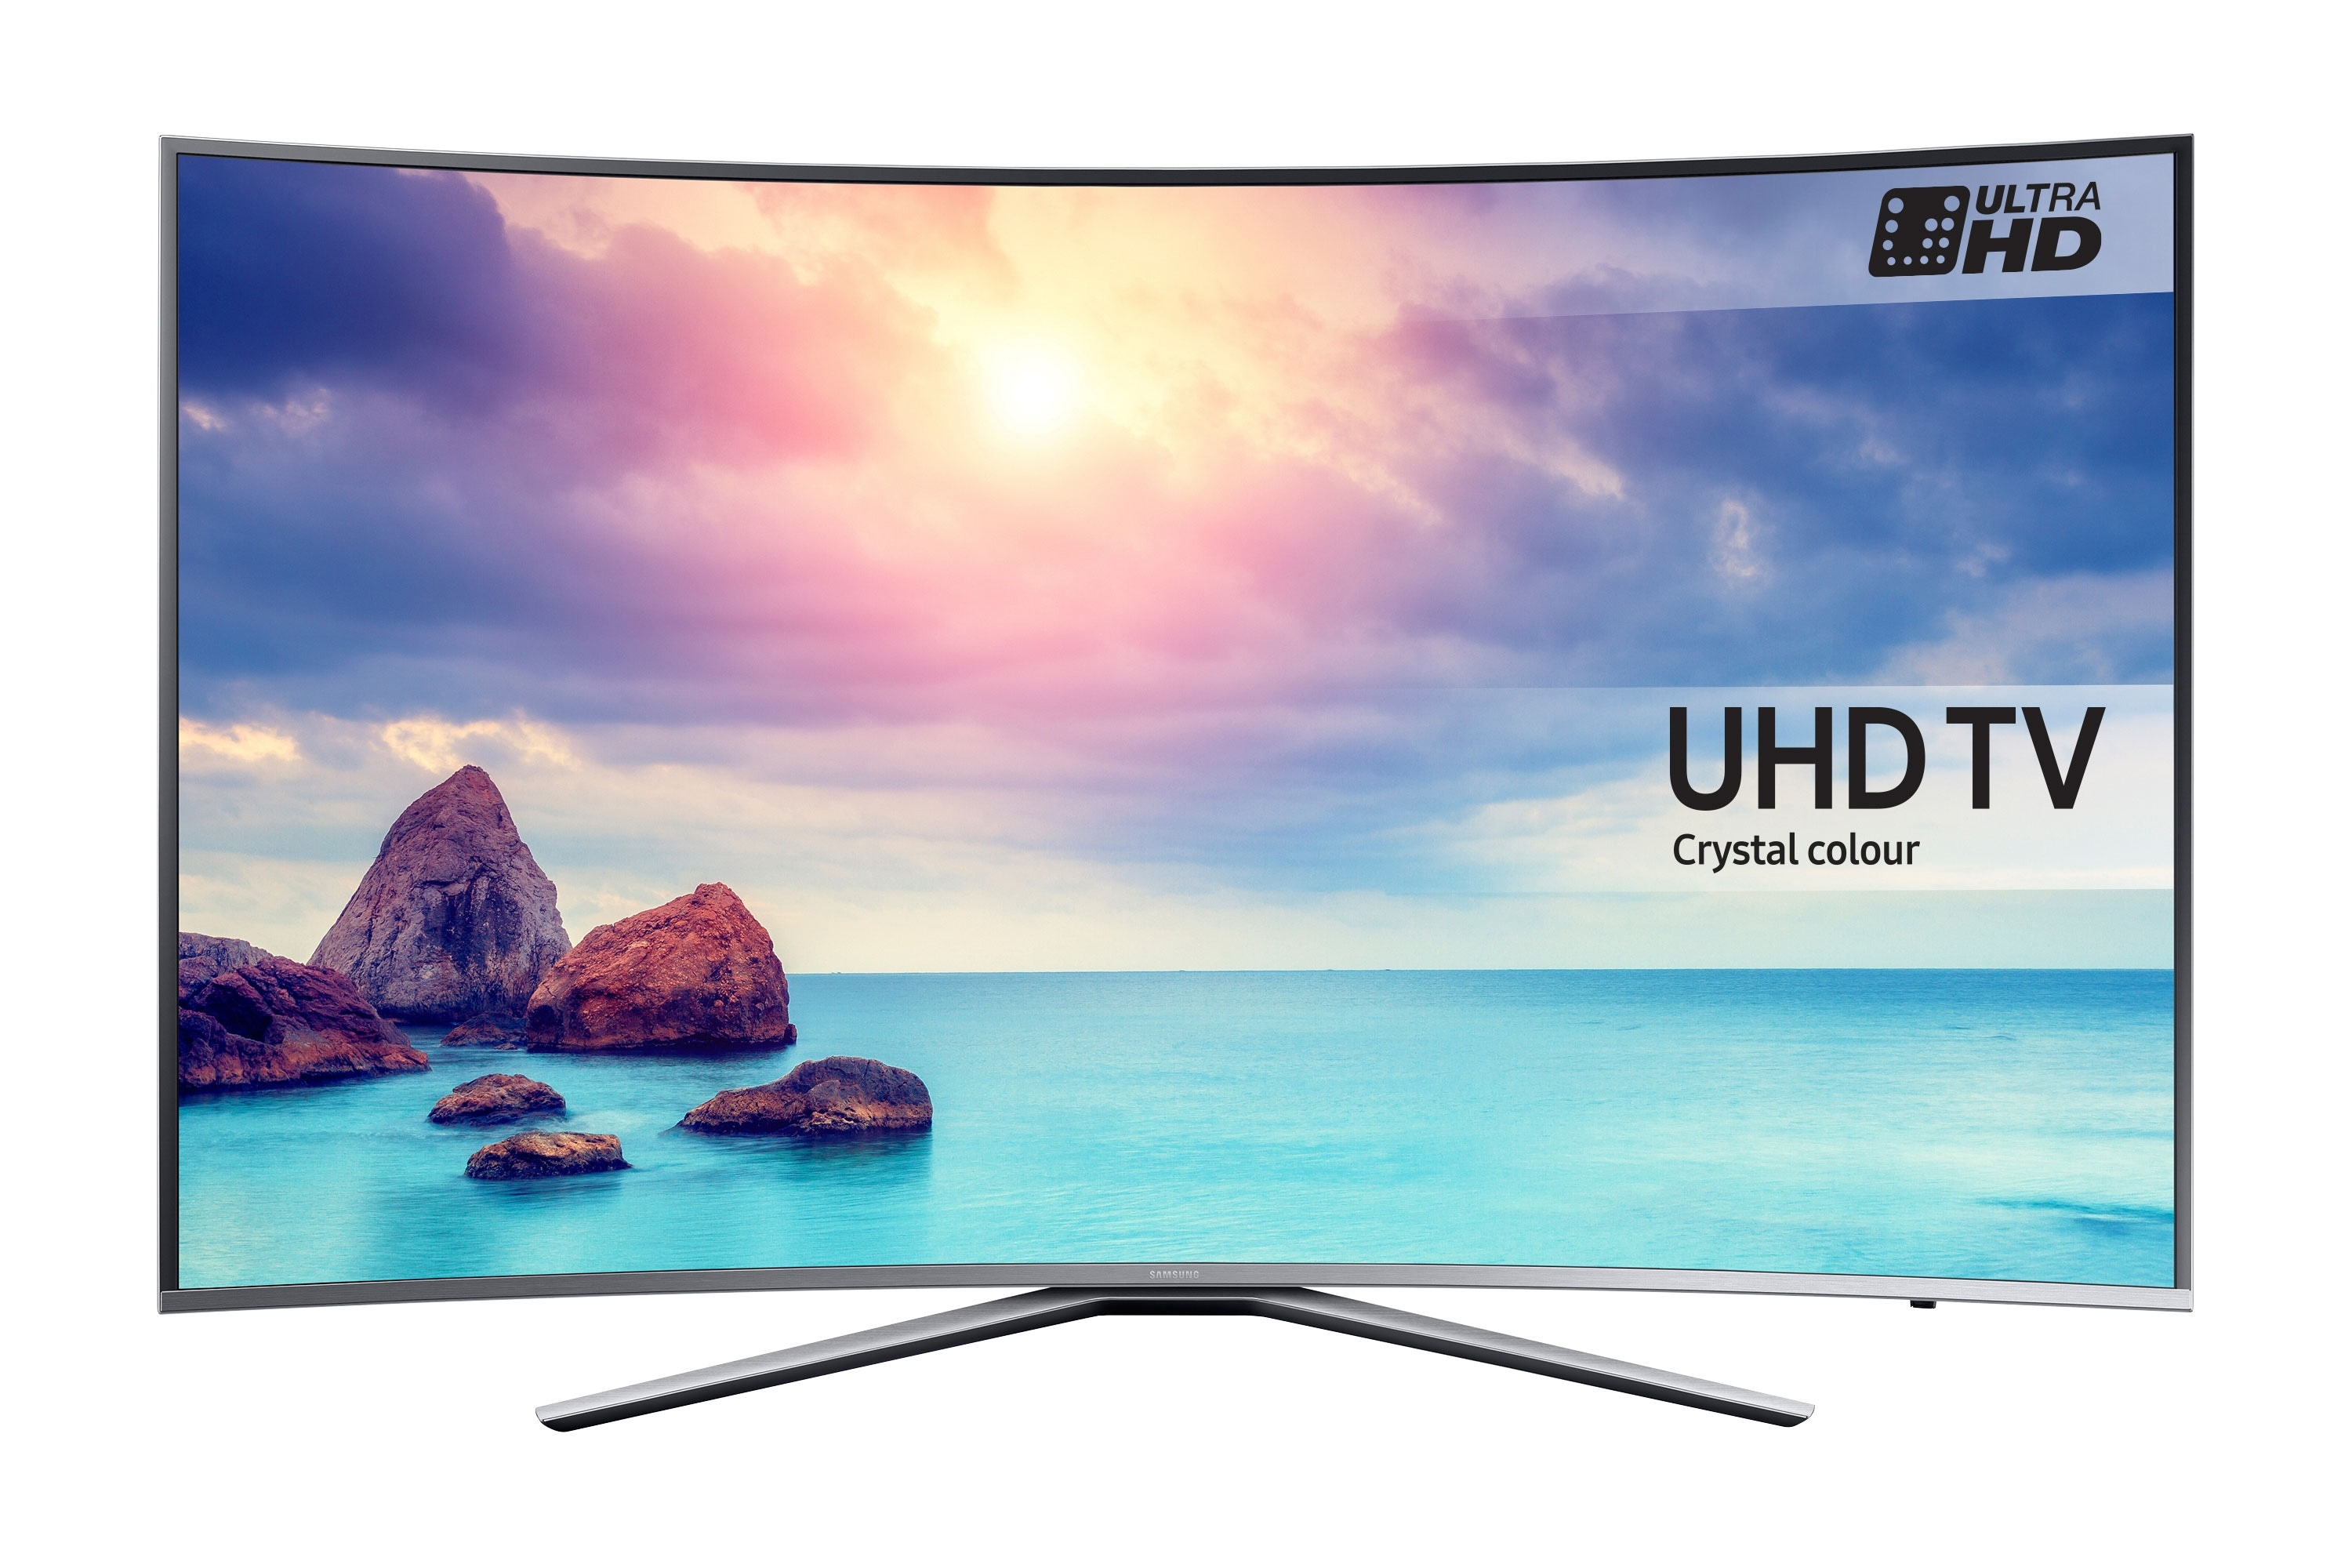 6-Series Curved UHD TV UE55KU6500